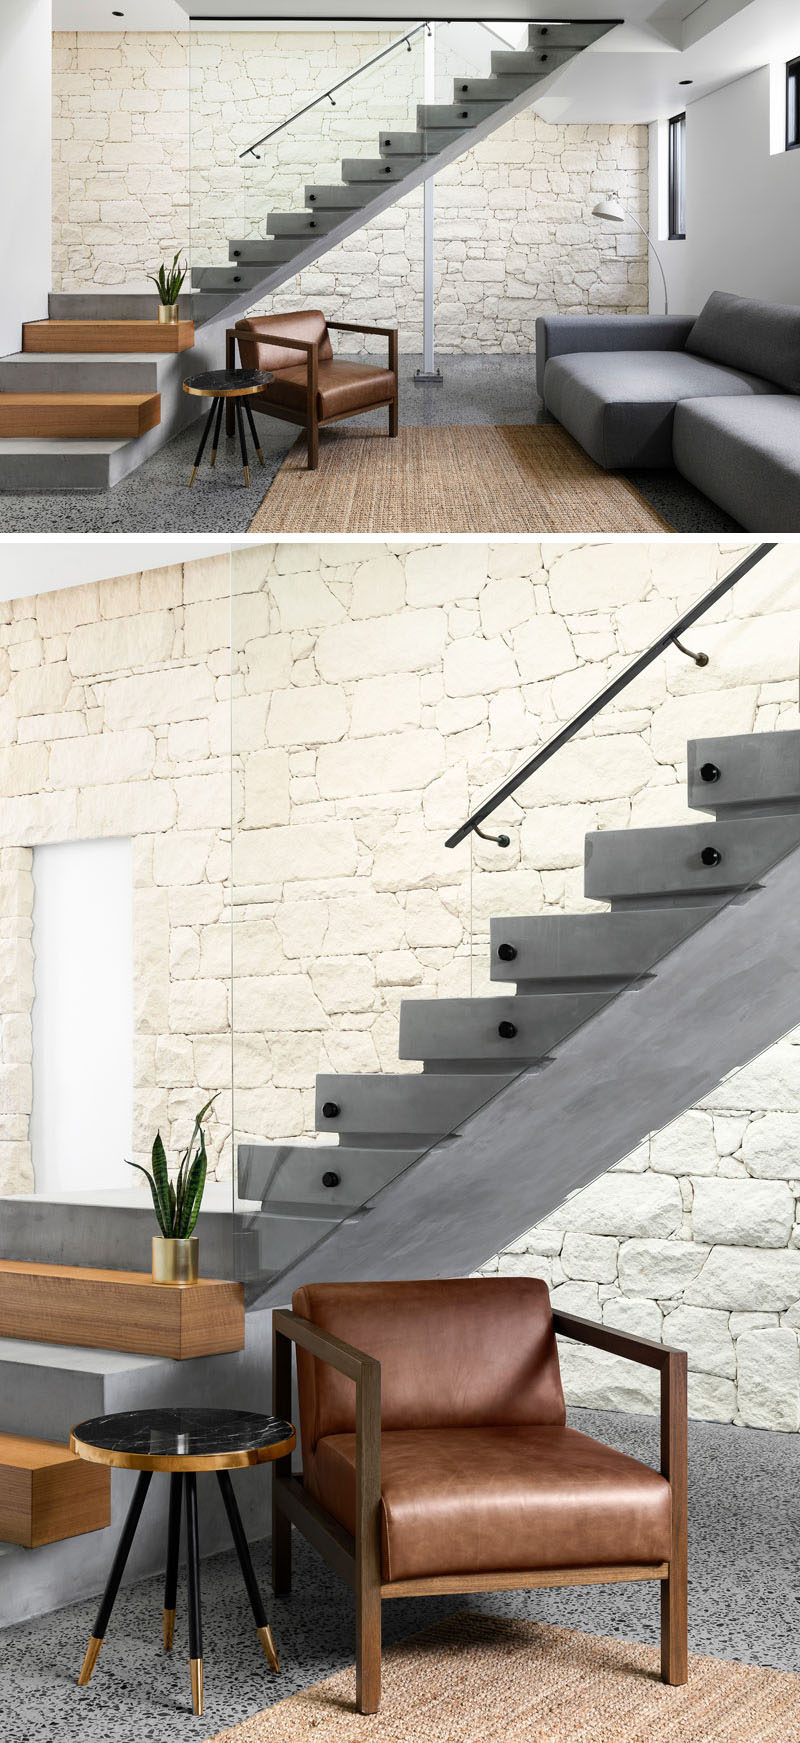 This modern house has stairs with concrete and wood steps and a glass handrail, to connect the various levels of the home. #Stairs #ModernStairs